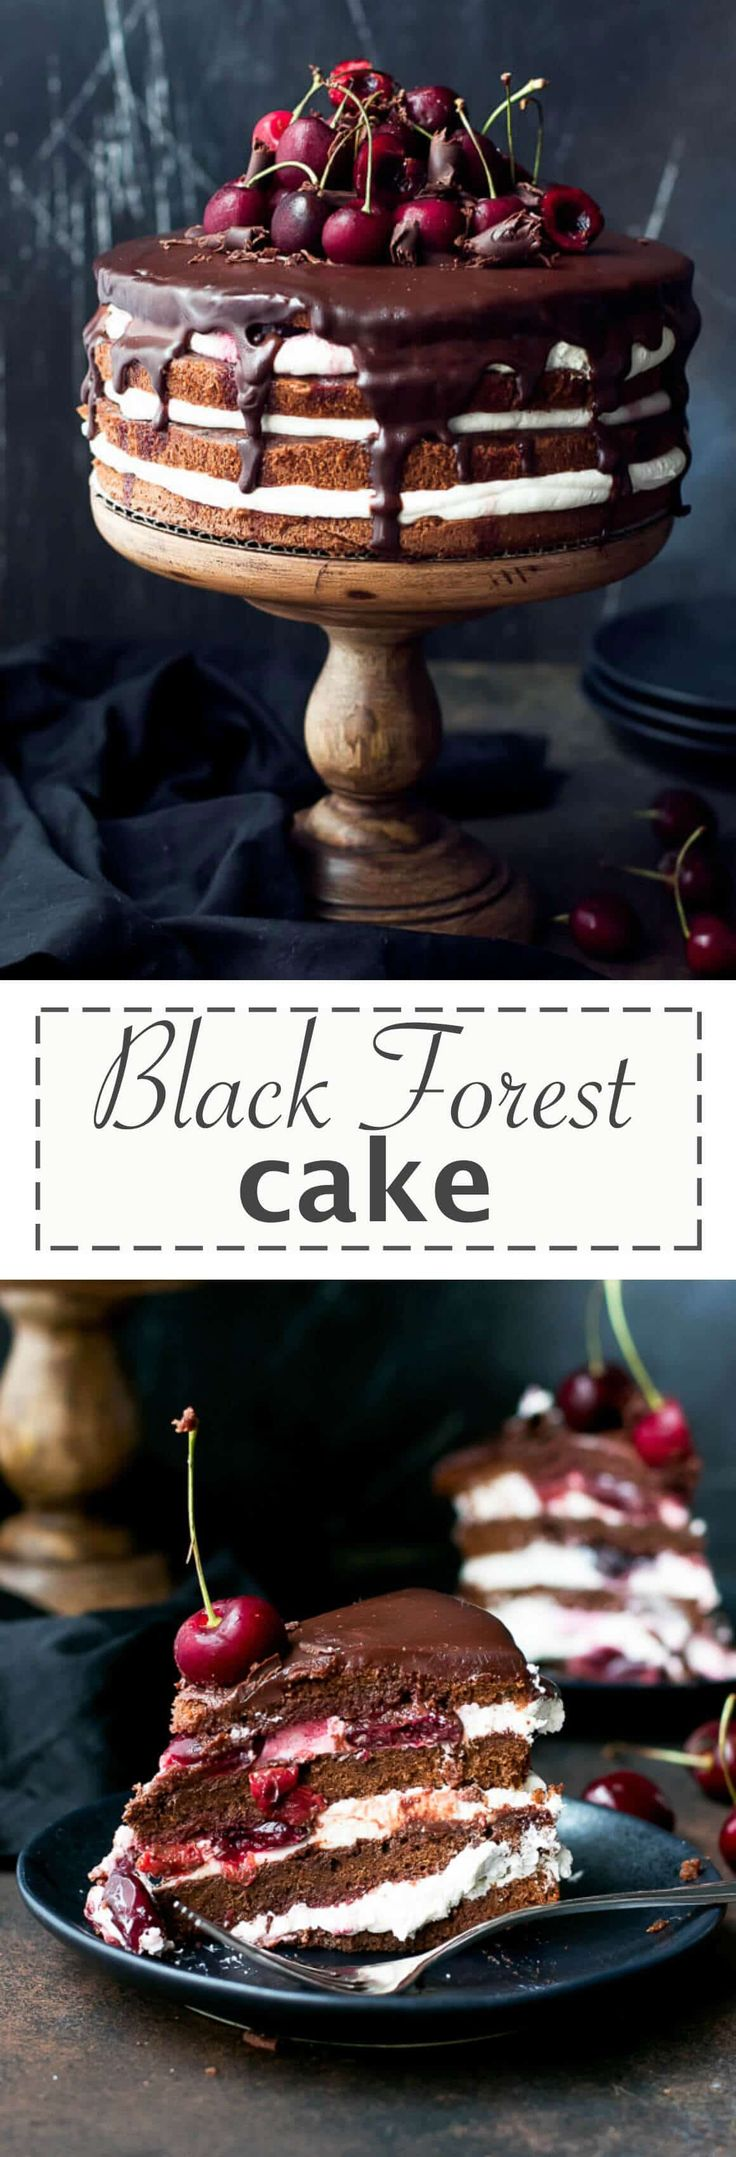 Easy Black Forest Cake Recipe - layers of chocolate cake, brushed with cherry liqueur, whipped cream and cherry filling. Gorgeous cake, with amazing flavors, light, chocolatey, boozy and fruity. Perfect for a celebration.